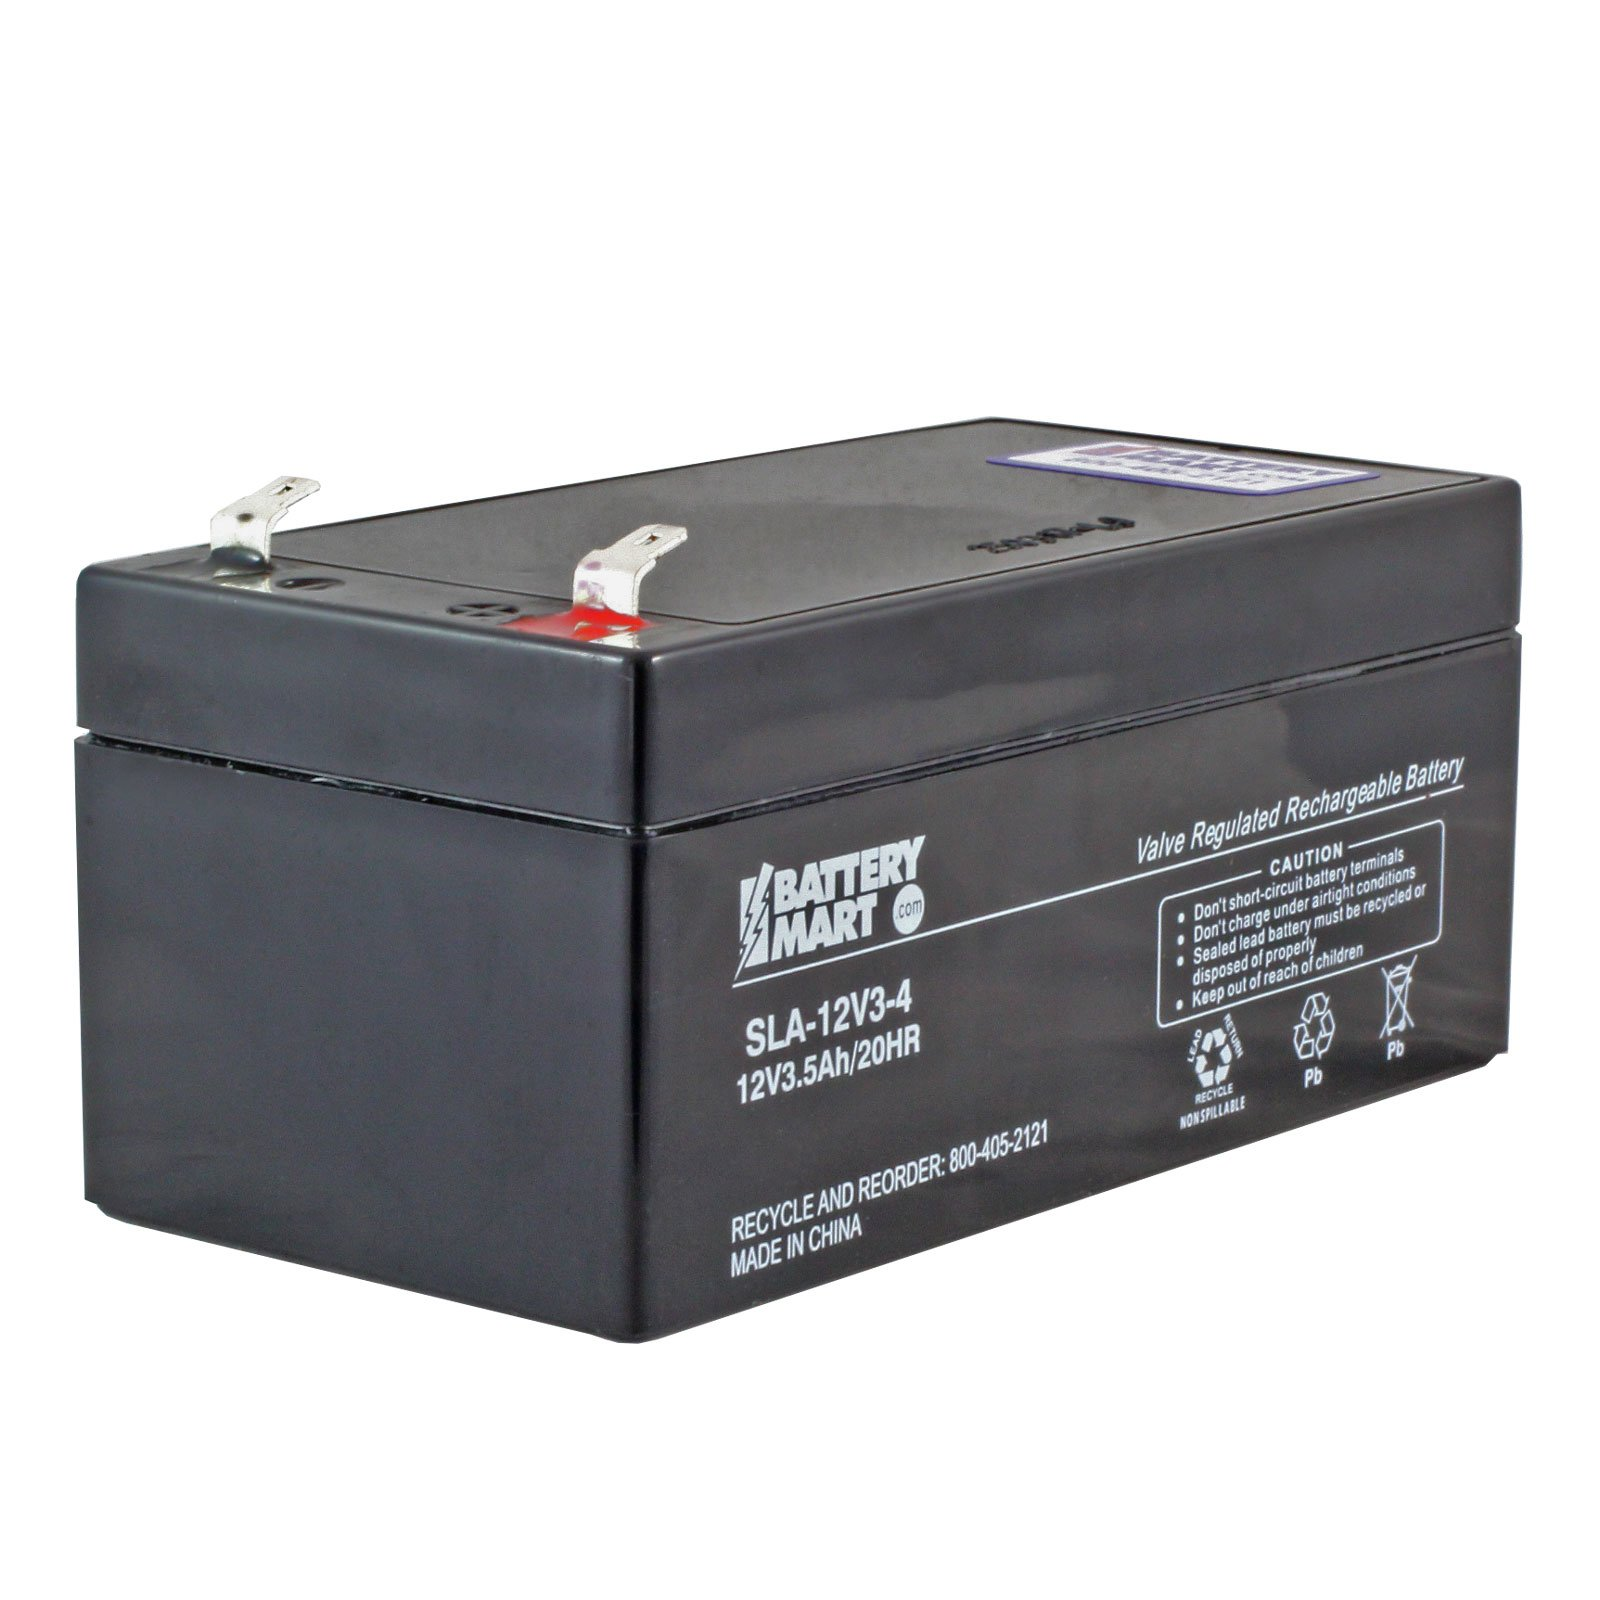 12 volt 3 2 ah sealed lead acid rechargeable battery f1. Black Bedroom Furniture Sets. Home Design Ideas